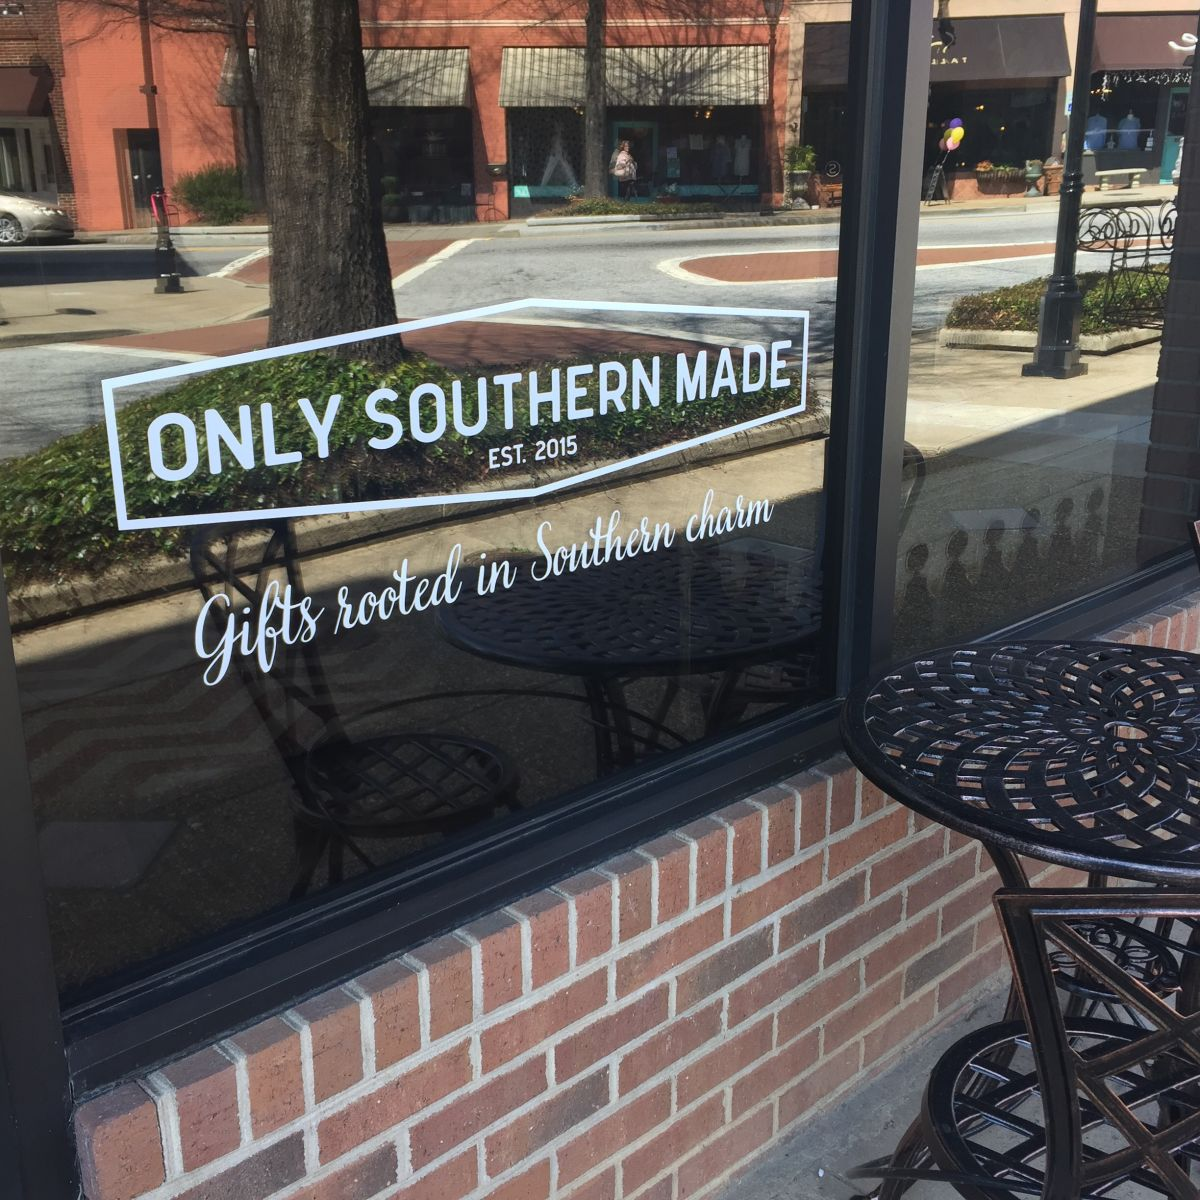 Only Southern Made, a retail store specializing in Southern-themed items, recently opened in downtown Greer. (Photo/Provided)